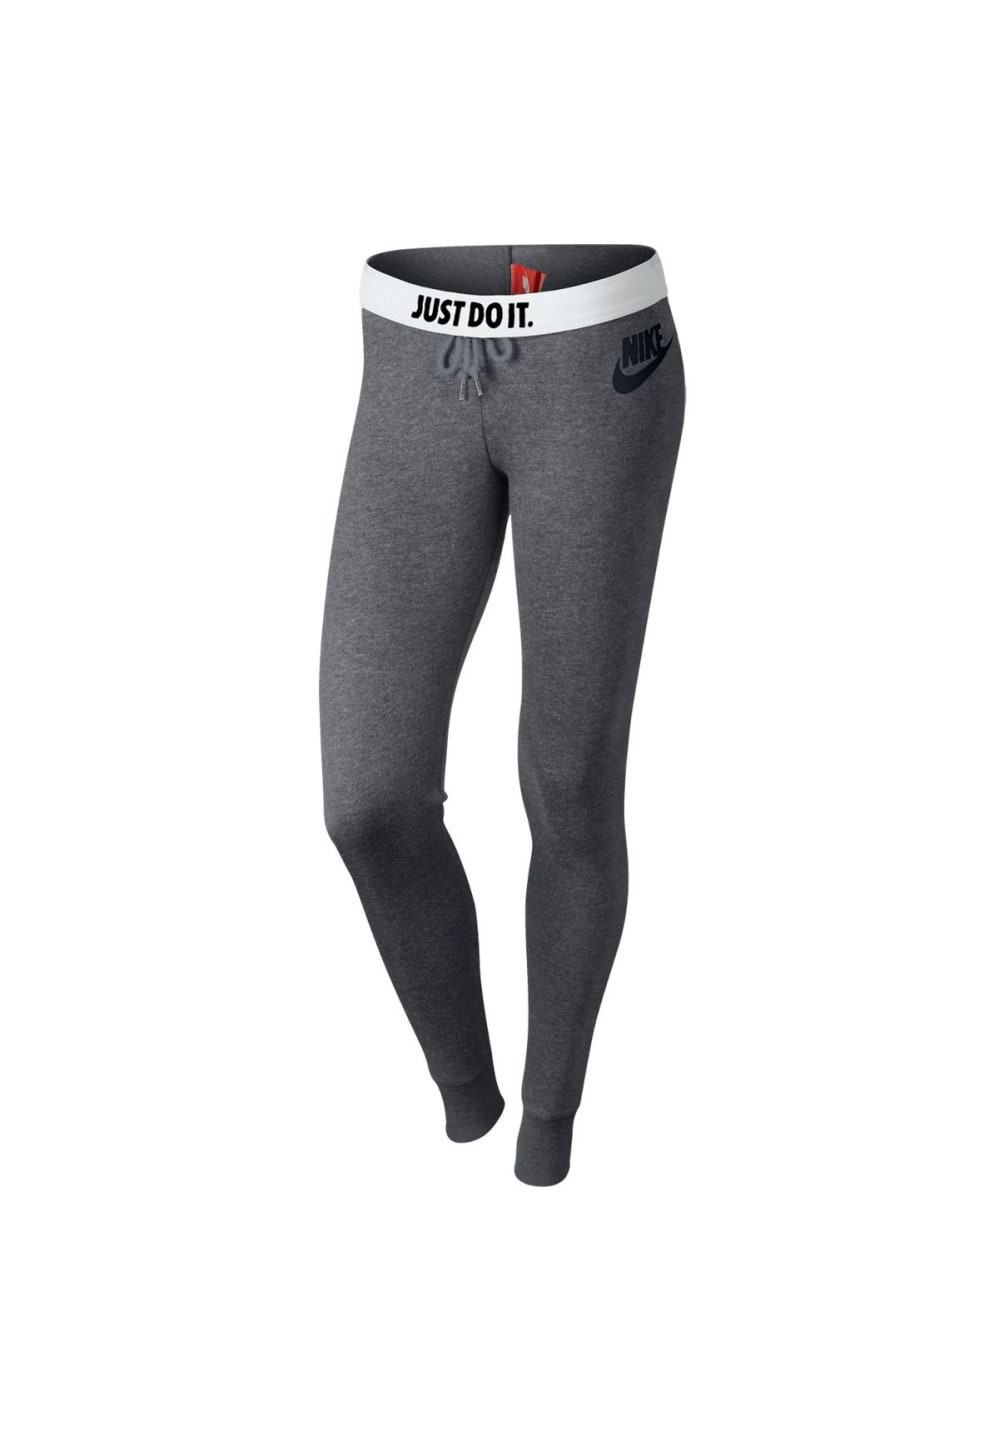 Nike Rally Tight Pant Fitness trousers for Women Grey